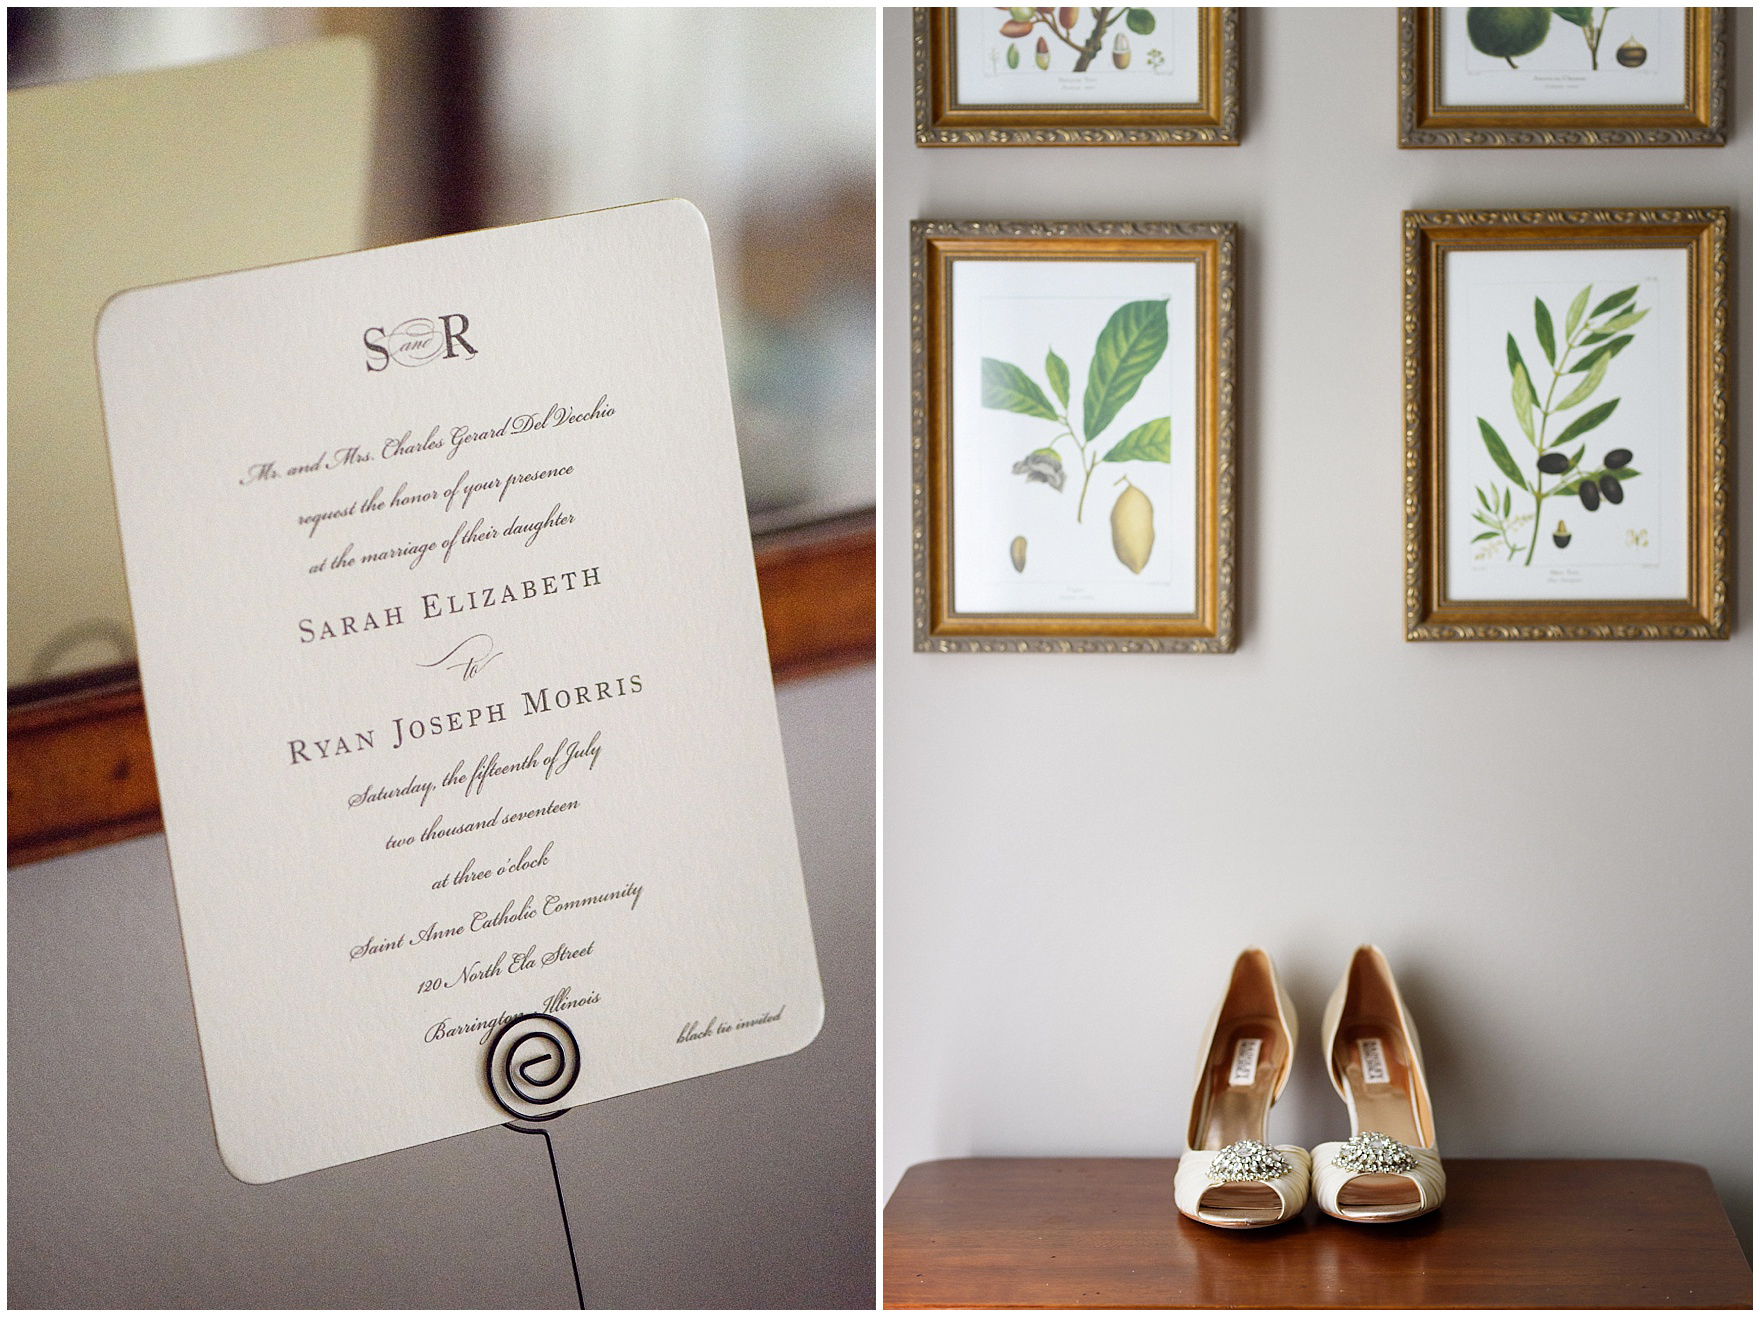 Details of a wedding invitation and bridal shoes photographed the foyer of a classic home before a Biltmore Country Club Barrington wedding.